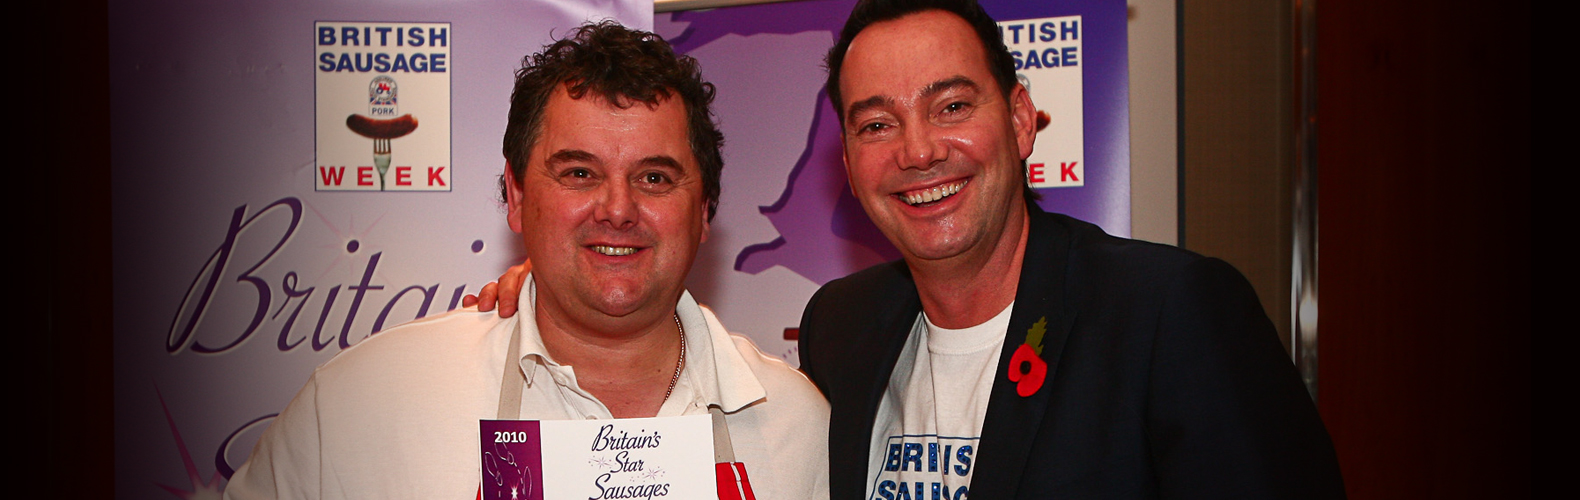 Craig Revel Horwood home page